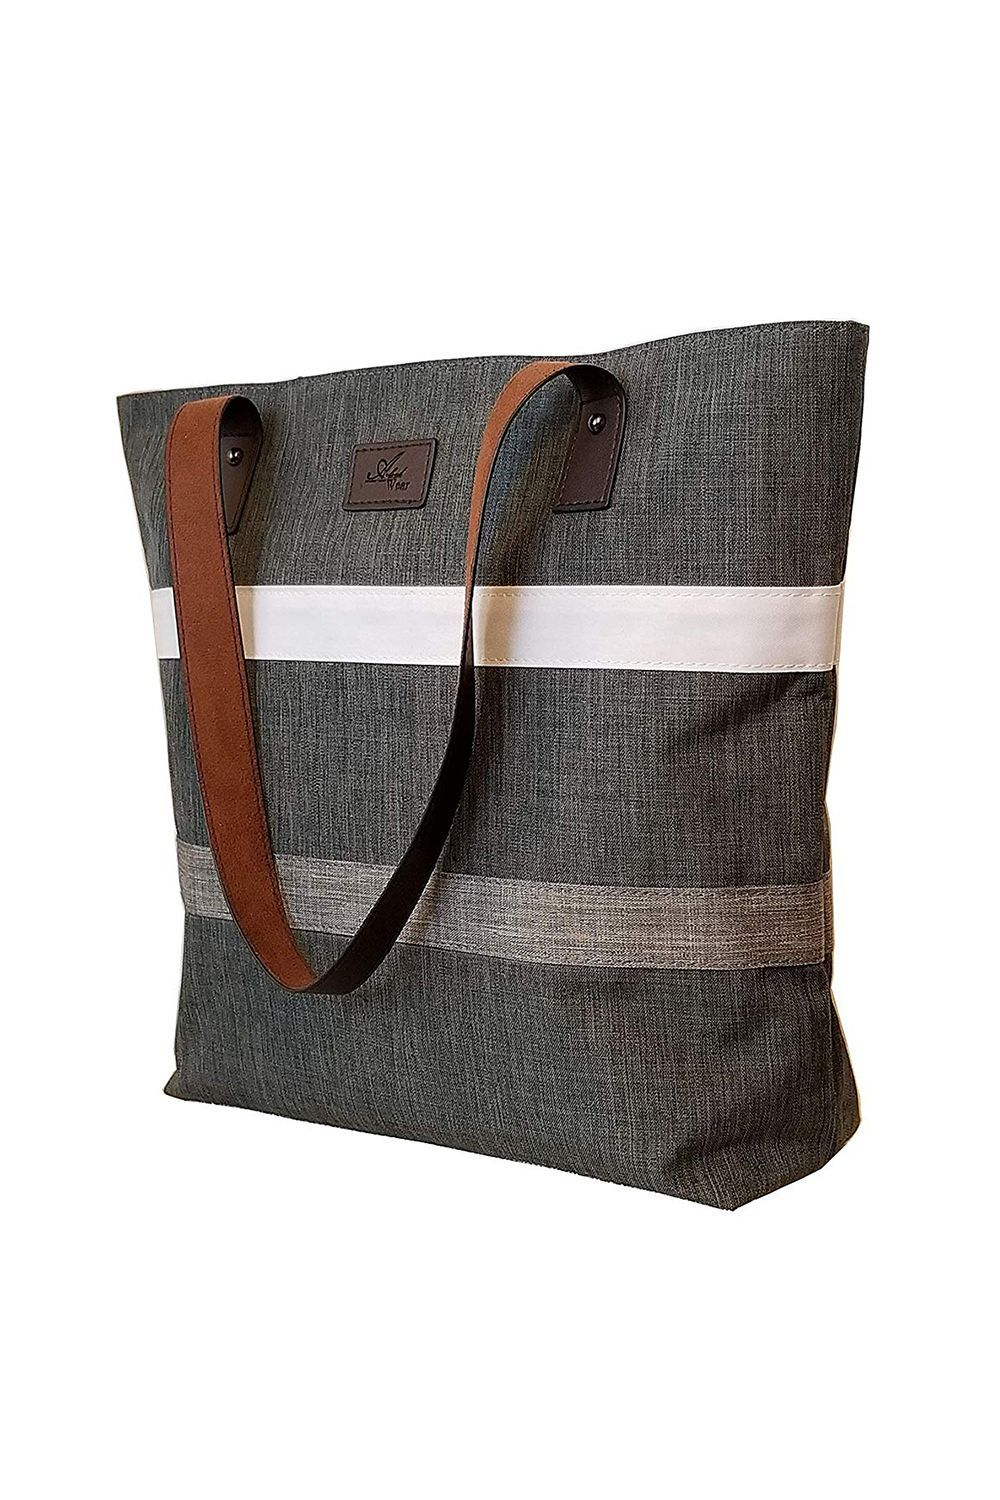 Best for Working Remotely Work Tote Bag Aleah Wear $20.97 SHOP IT Unlike the previous canvas tote, this one has a gray background with white and gray stripes. The tonal color makes it easy to match with clothing and because of the hue, makes it a suitable summer work bag.